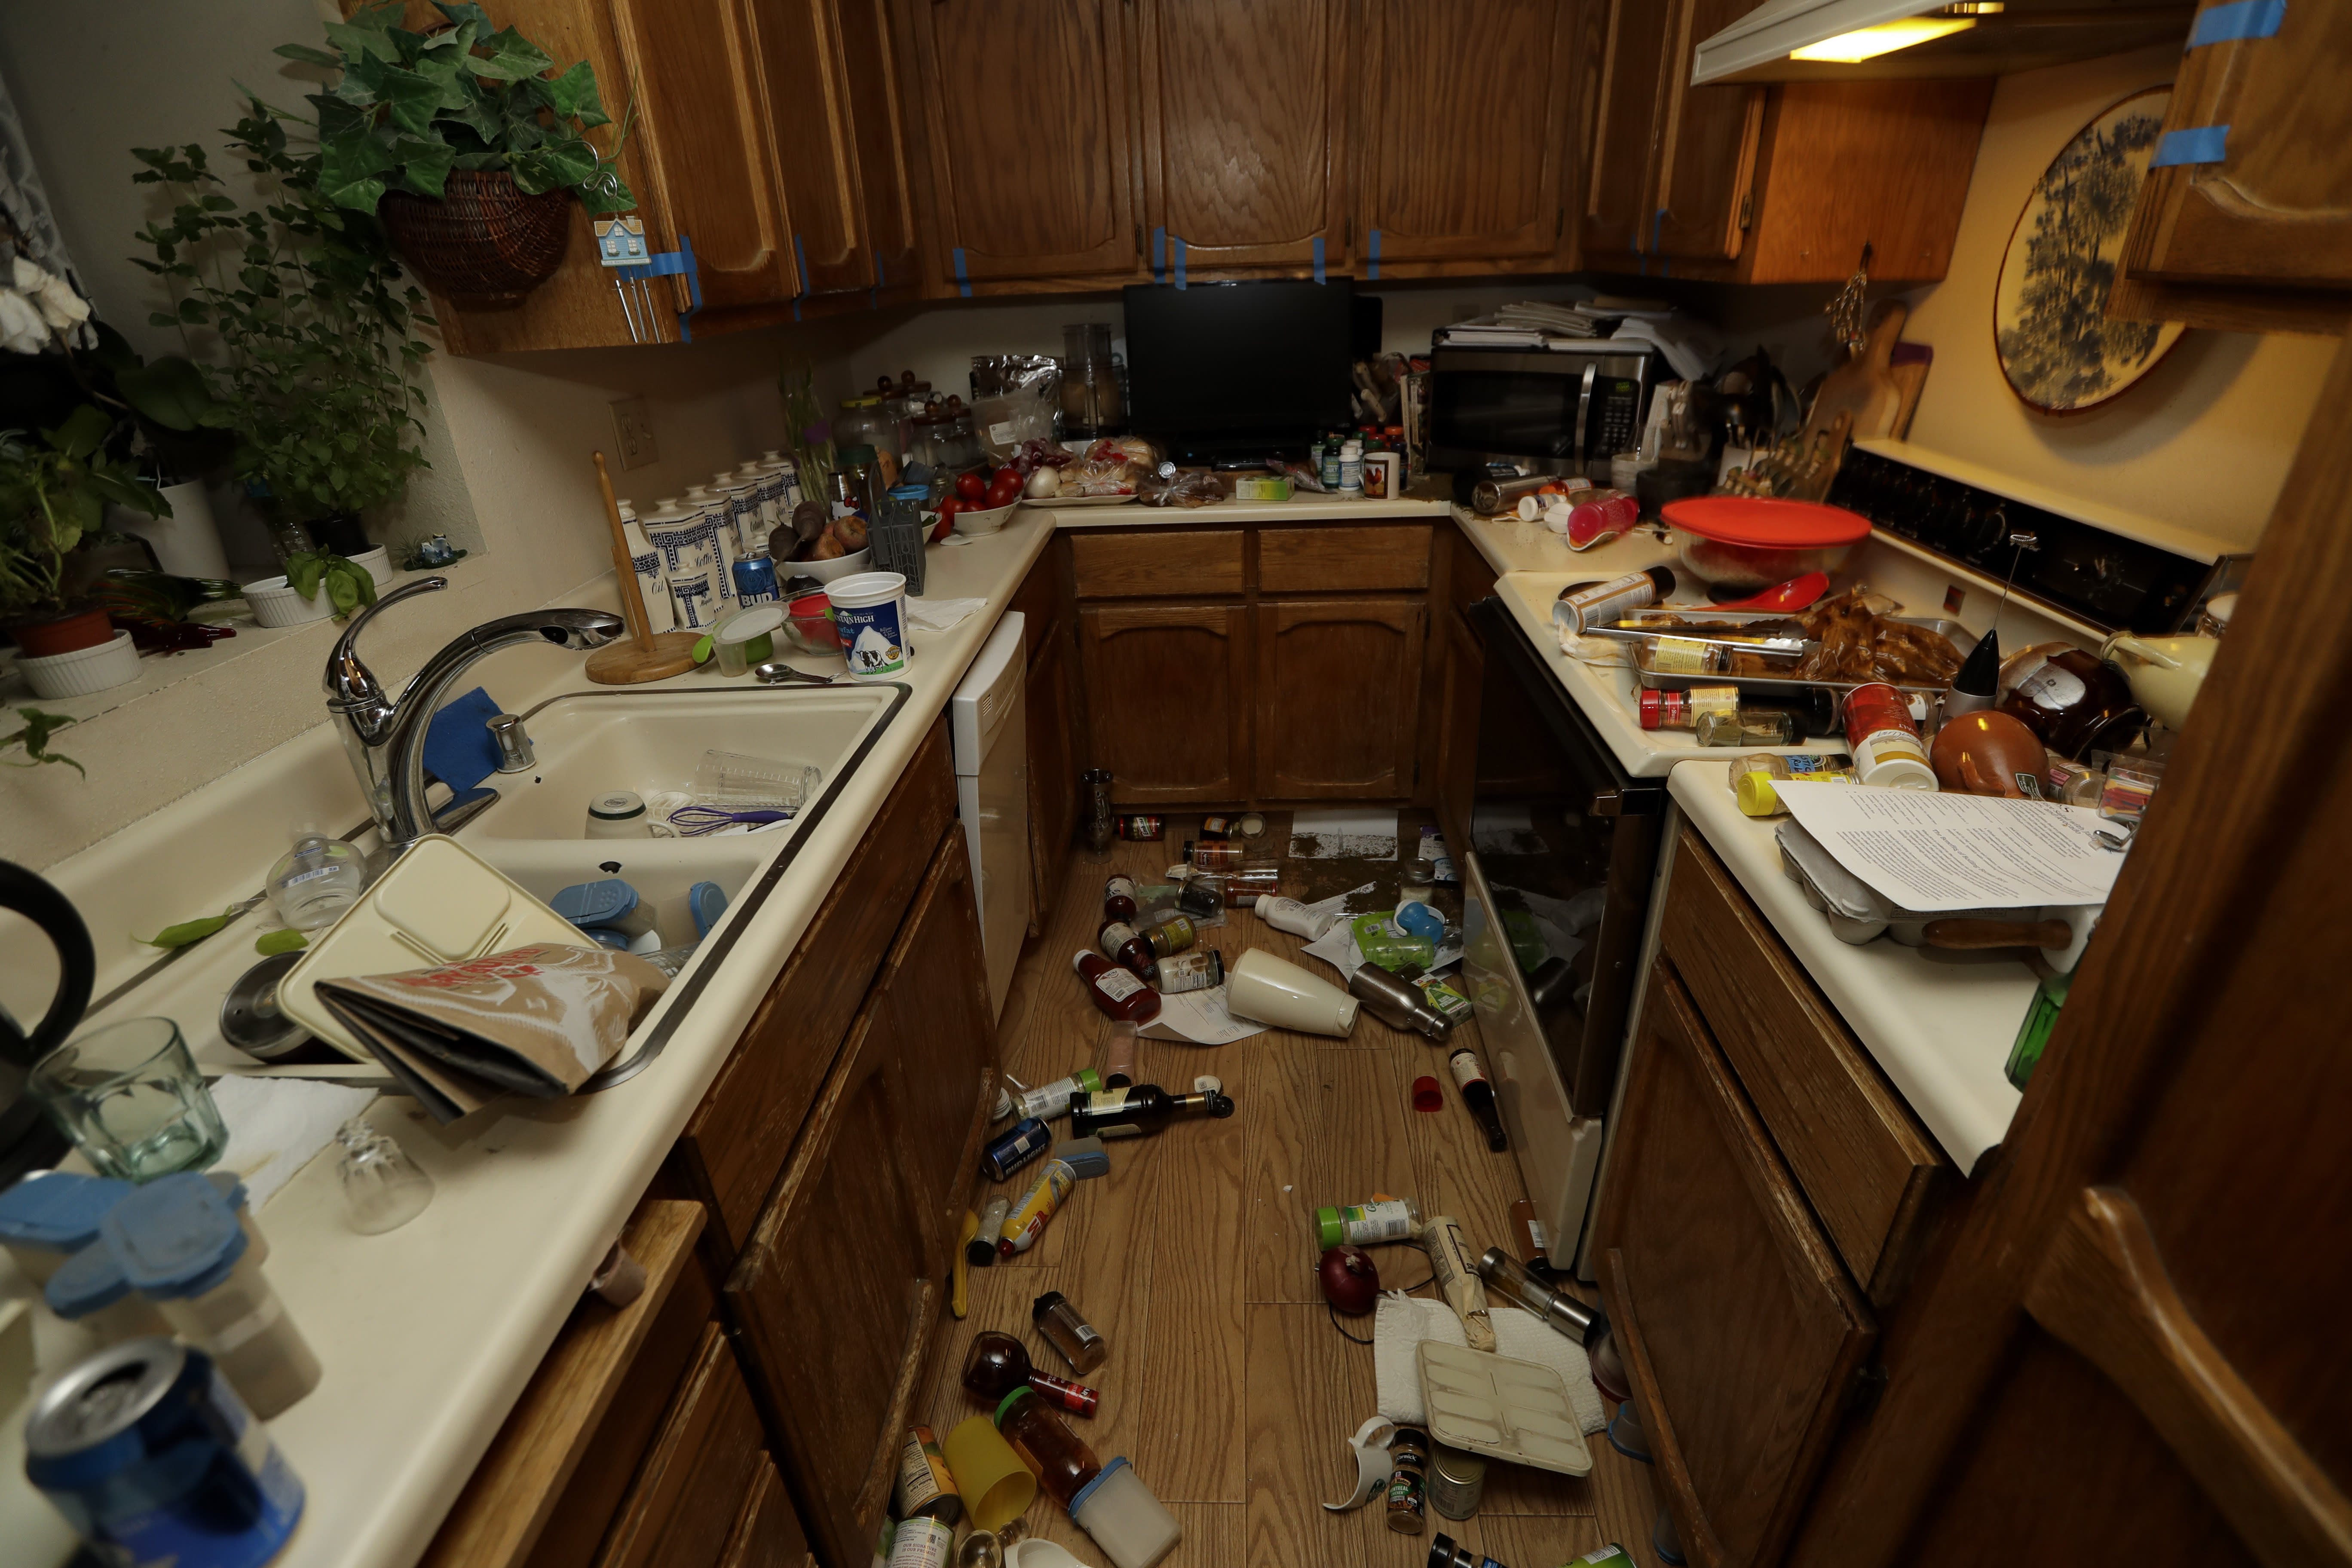 Items are scattered around a kitchen Saturday, July 6, 2019 following a earthquake in Ridgecrest, Calif. The Friday evening quake with a magnitude of about 7.1 jolted much of California, cracking buildings, setting fires, breaking roads and causing several injuries while seismologists warned that large aftershocks were expected to continue for days, if not weeks. ( AP Photo/Marcio Jose Sanchez)